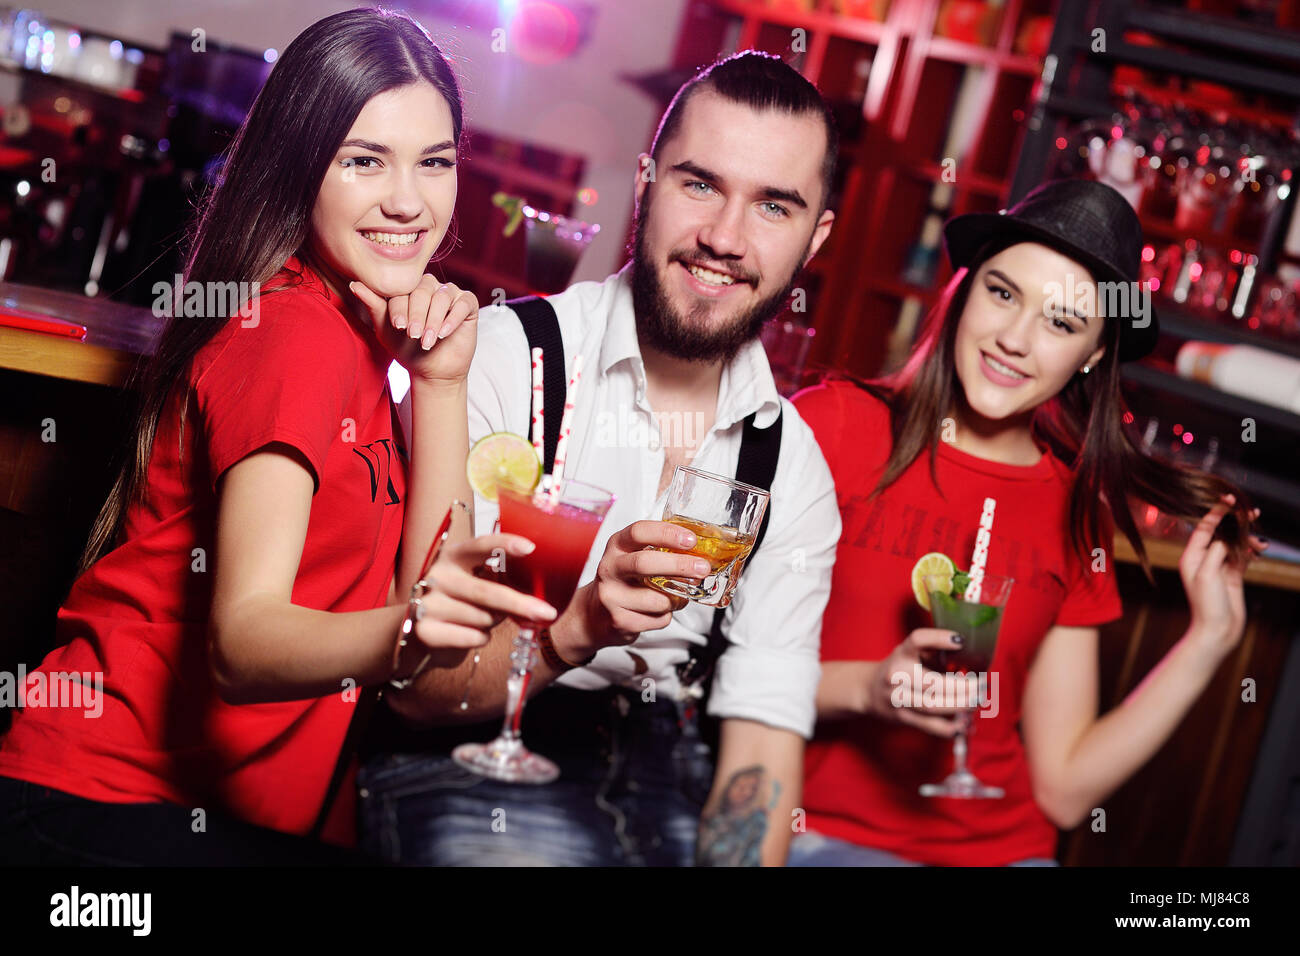 three friends - cute guy and two attractive young girls at a party holding cocktails in front of a bar smiling - Stock Image